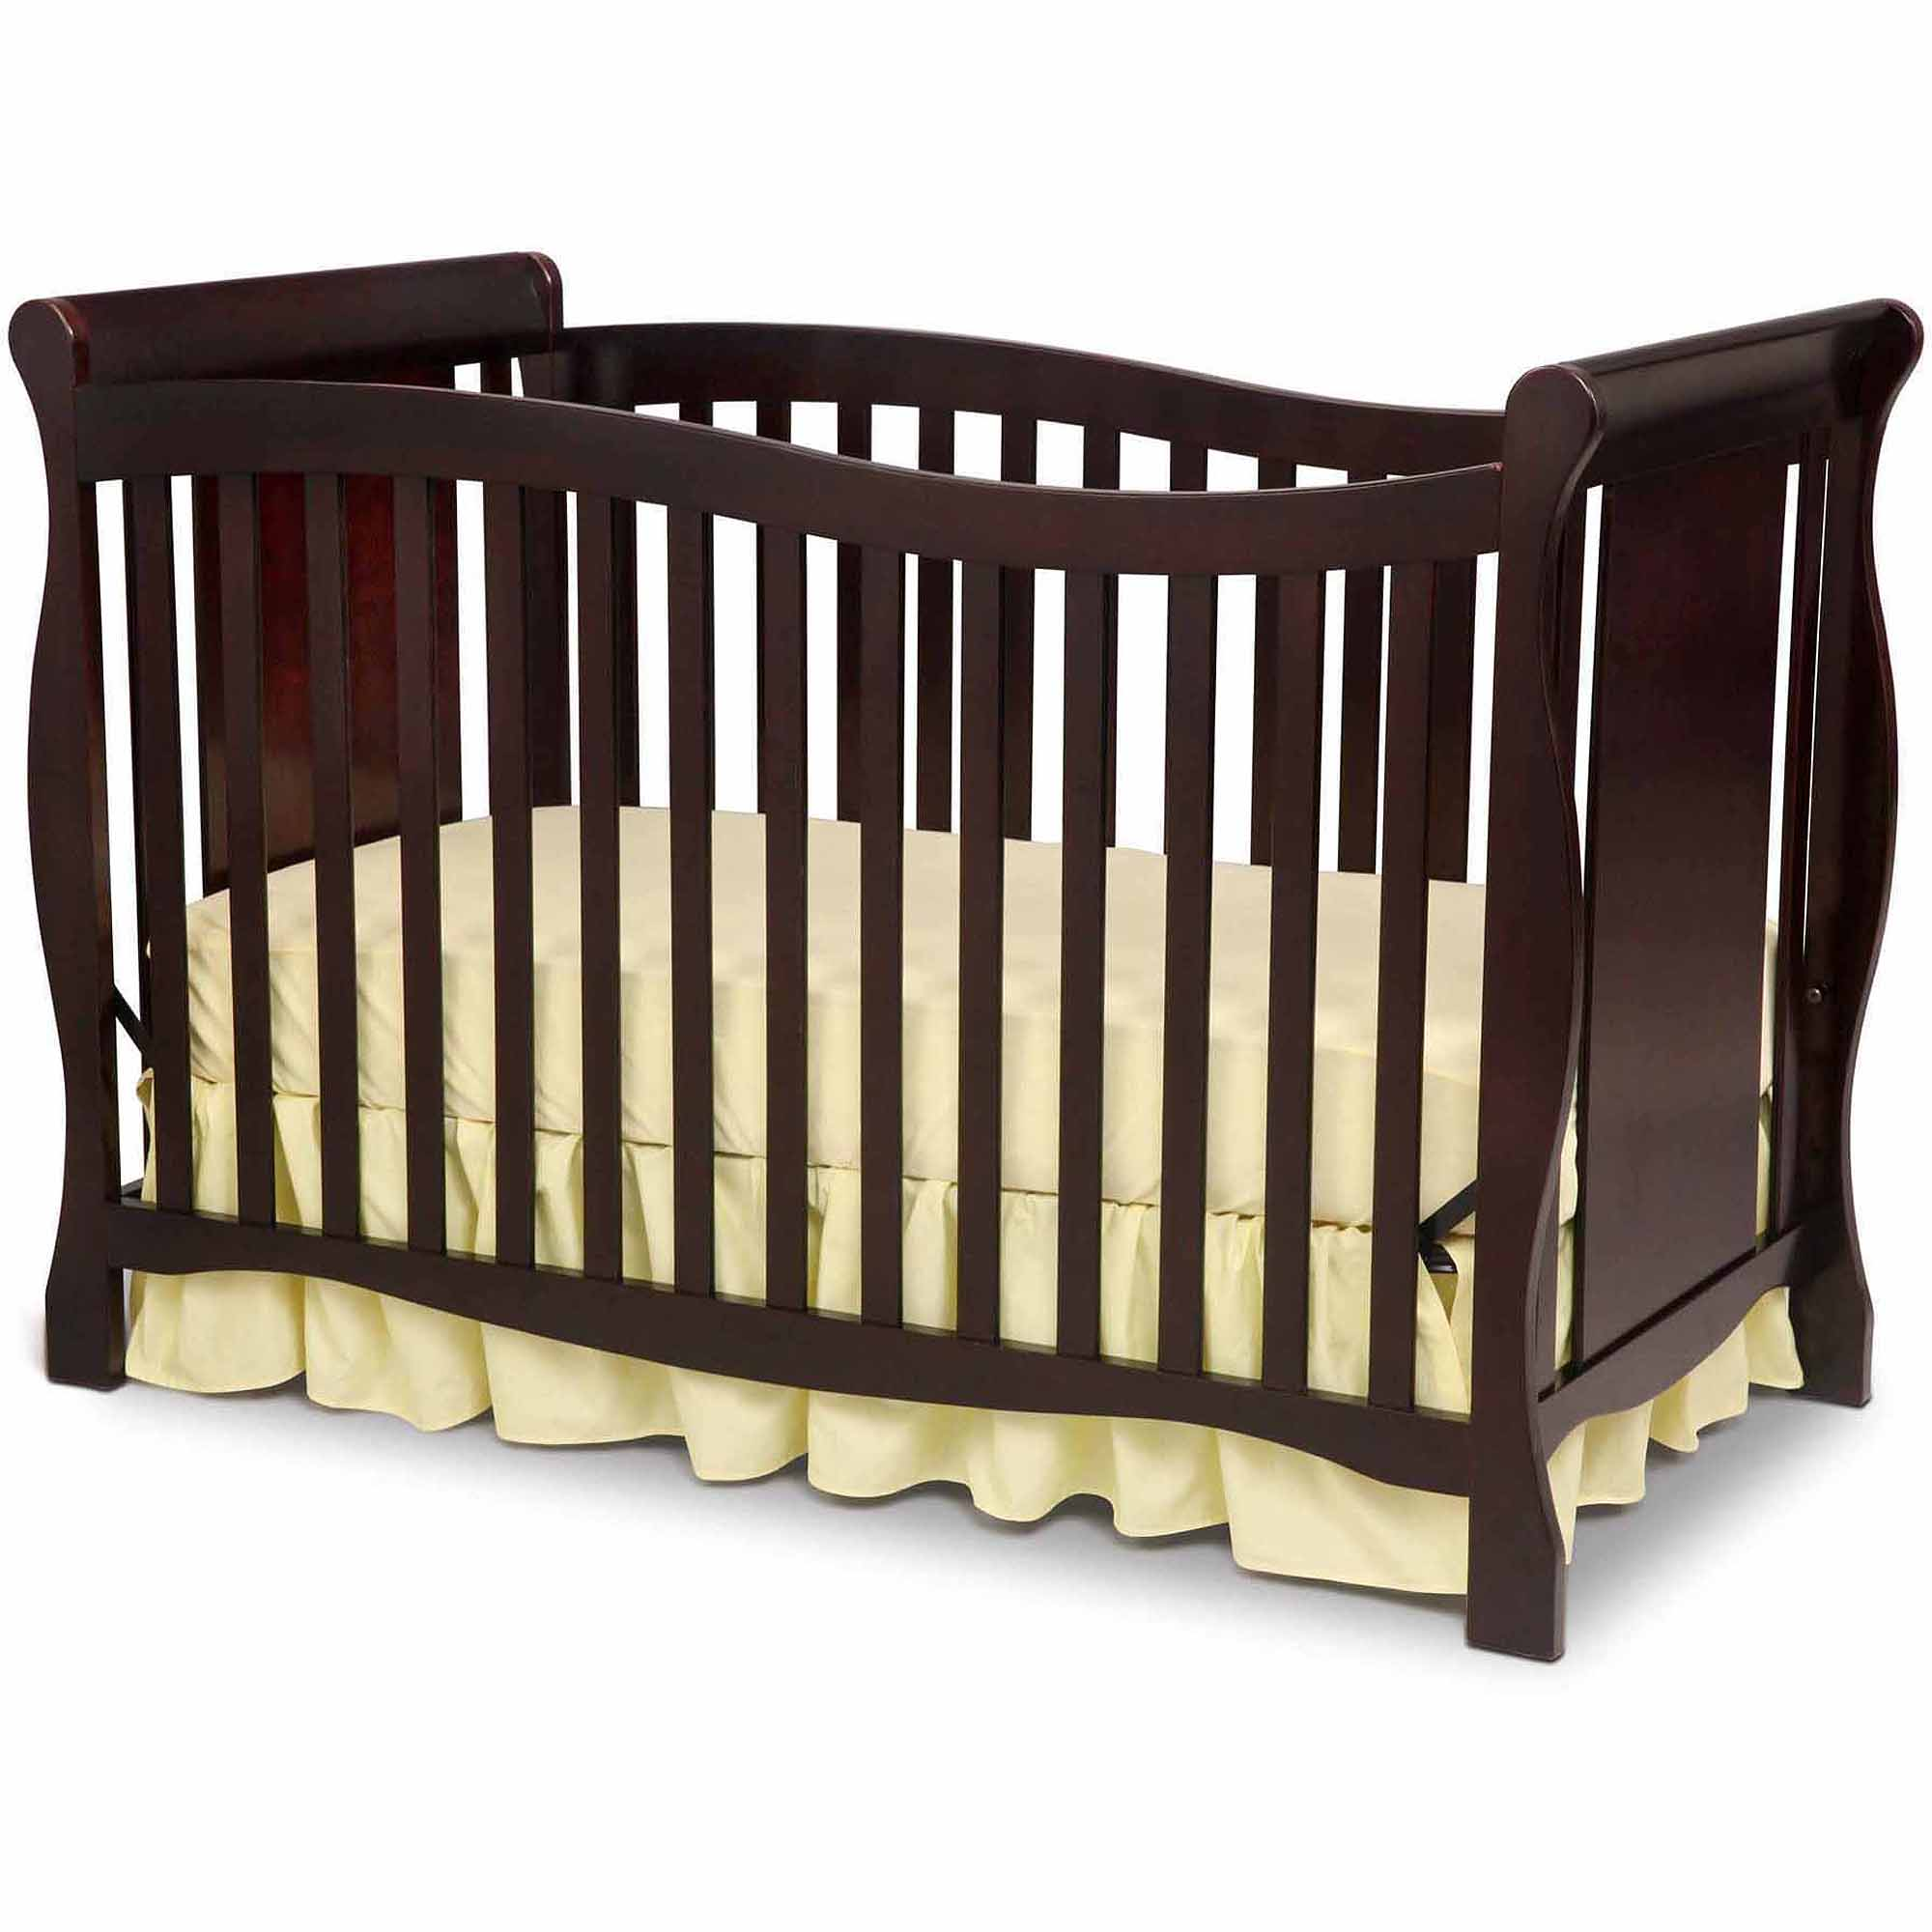 Delta Children's Products Brookside 4-in-1 Fixed-Side Crib, Choose your Finish